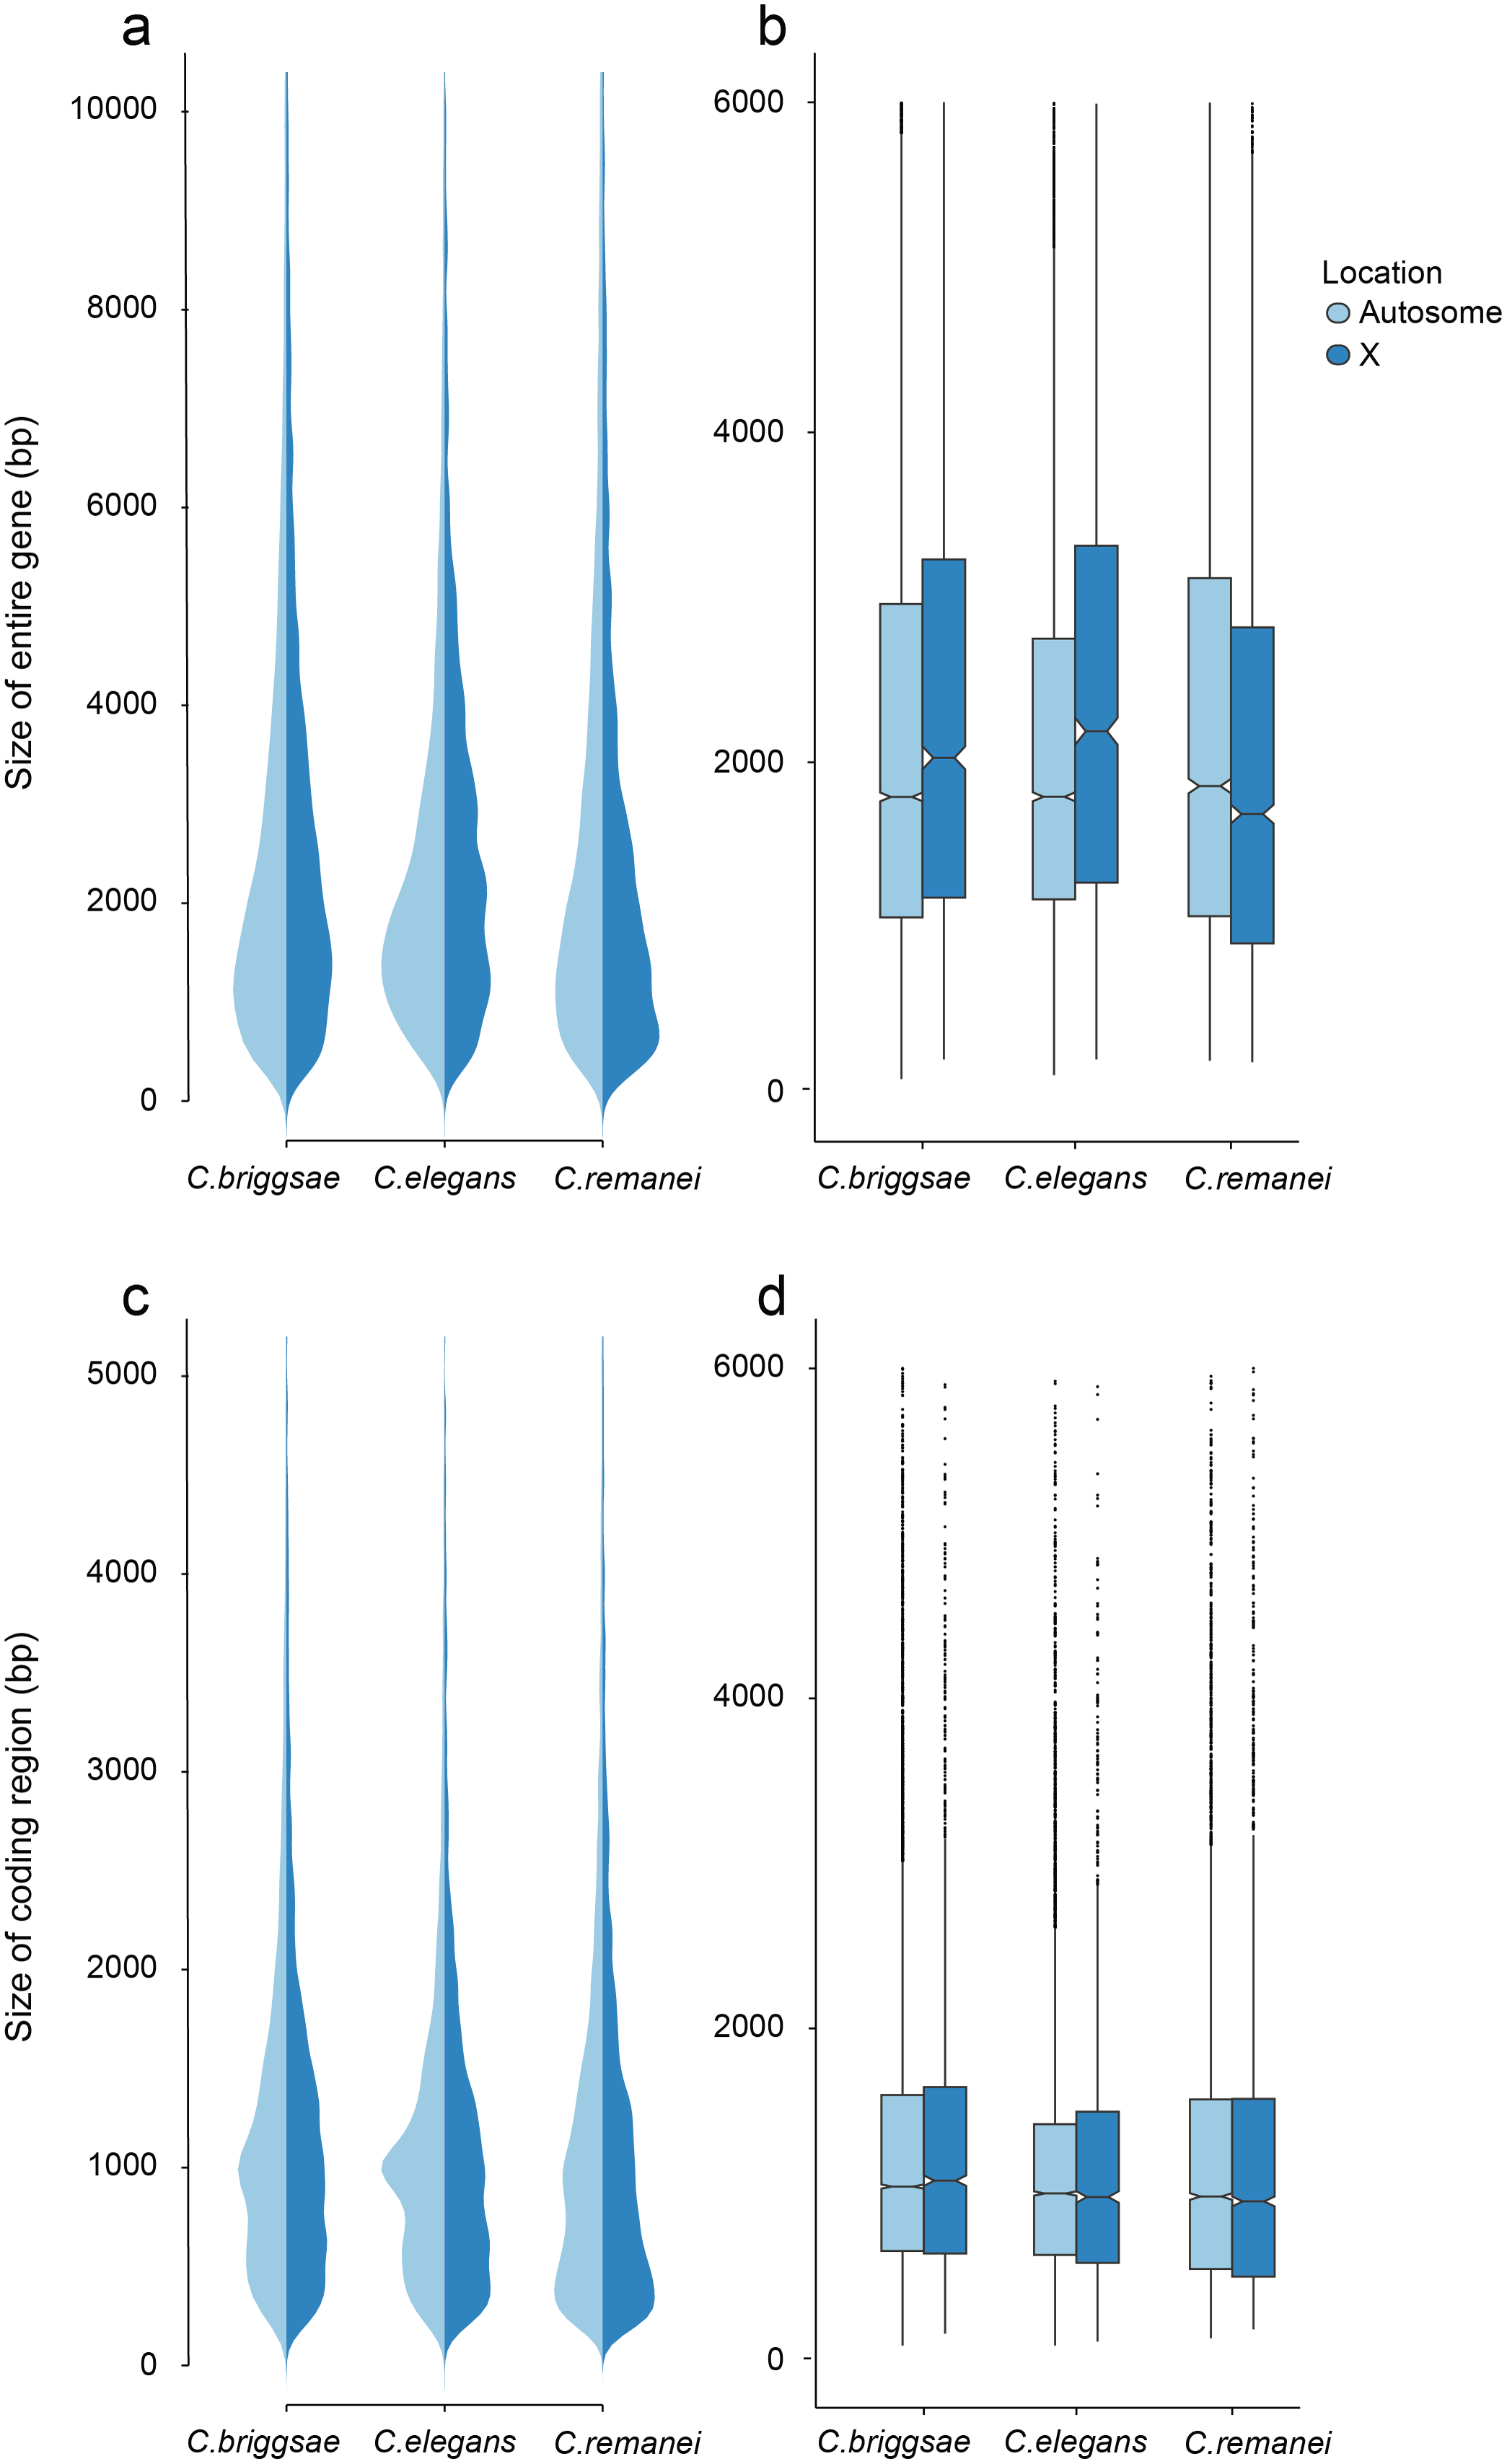 Differences in total gene size (introns and exons) versus protein coding size (exons) in <i>C. elegans</i>, <i>C. briggsae</i> and <i>C. remanei</i>.